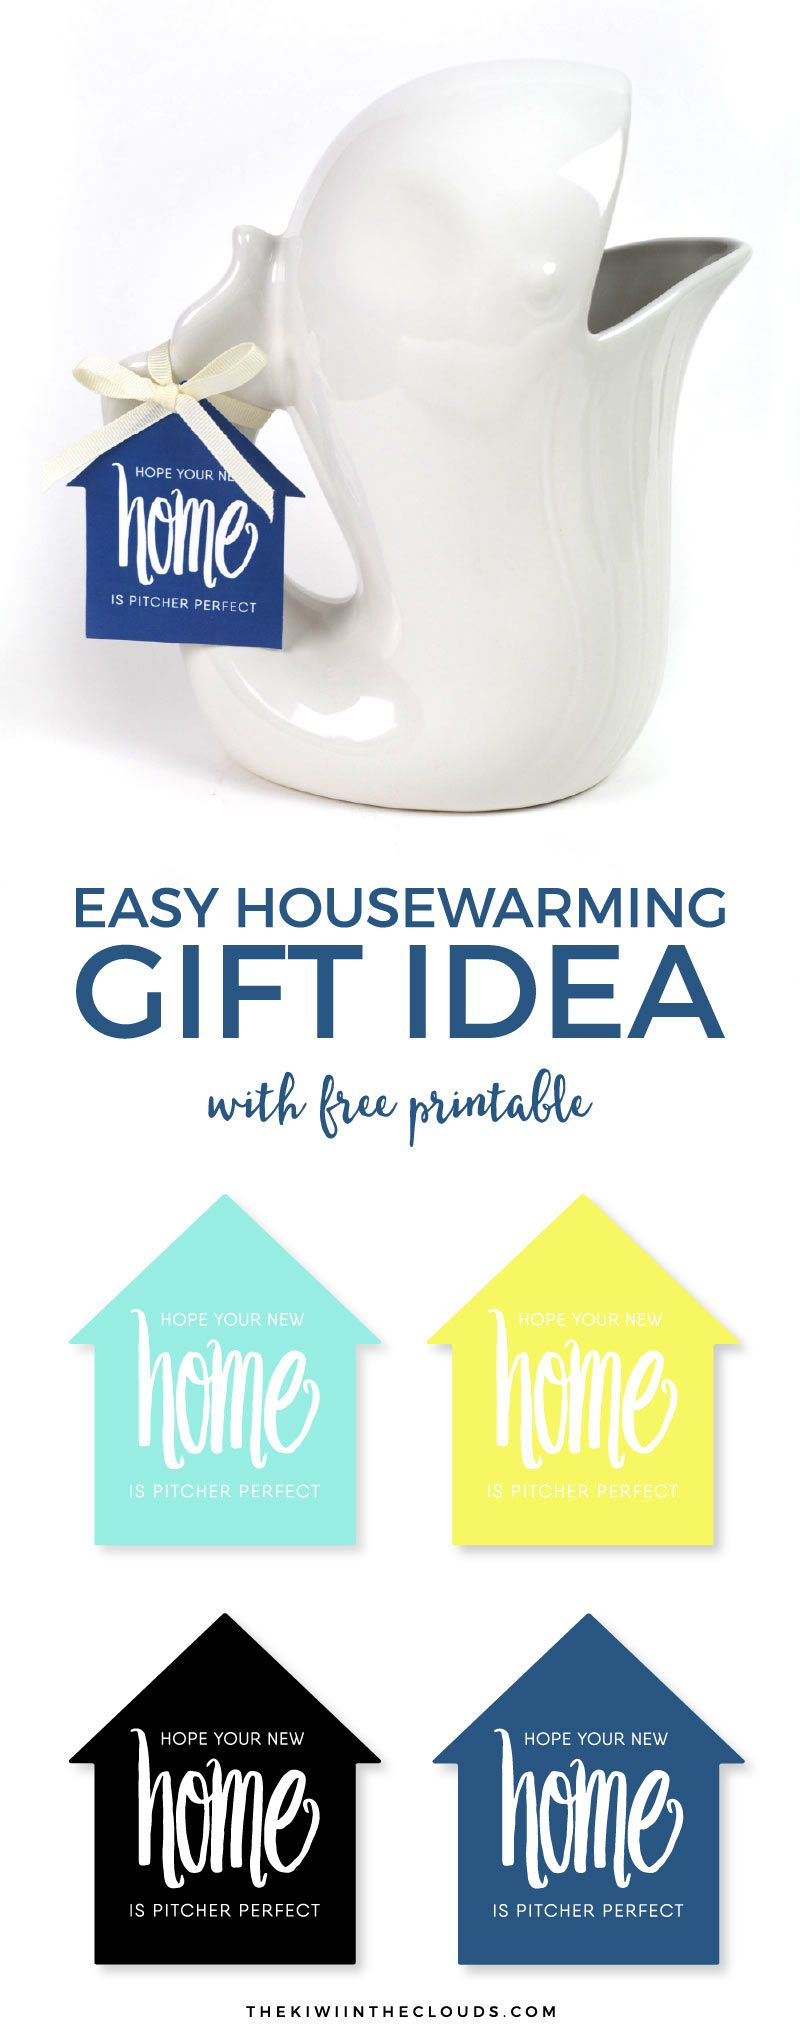 Easy & Cute Housewarming Gift Idea | Free printable gift tags ...